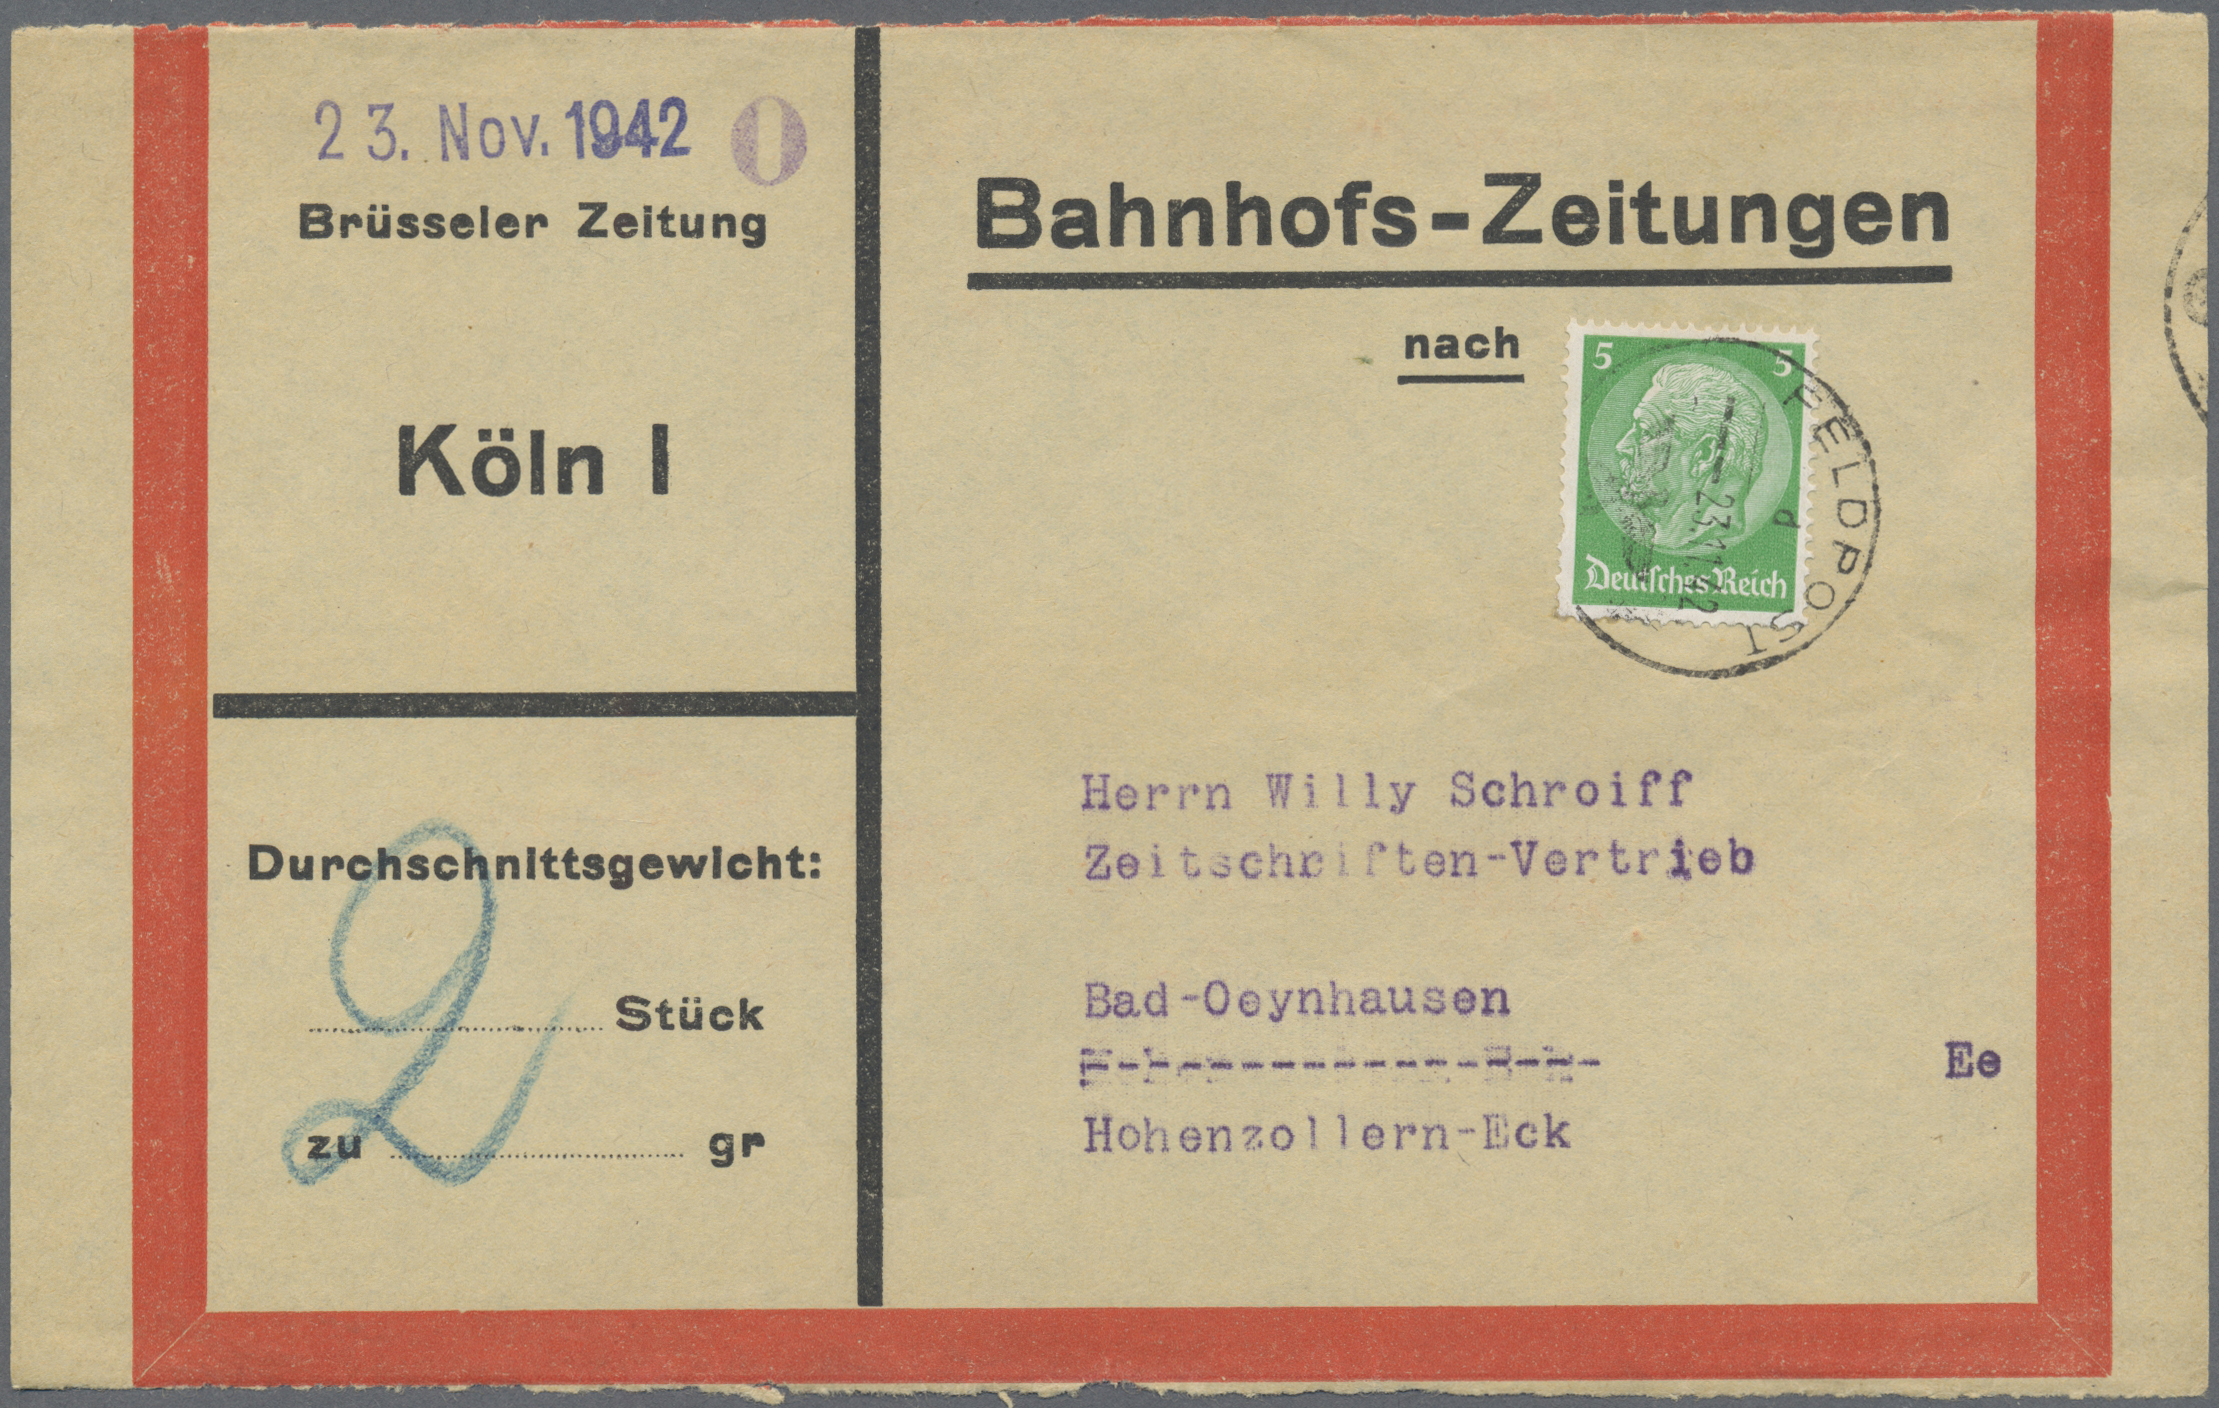 Lot 29009 - feldpost 2. weltkrieg  -  Auktionshaus Christoph Gärtner GmbH & Co. KG Sale #46 Gollcetions Germany - including the suplement